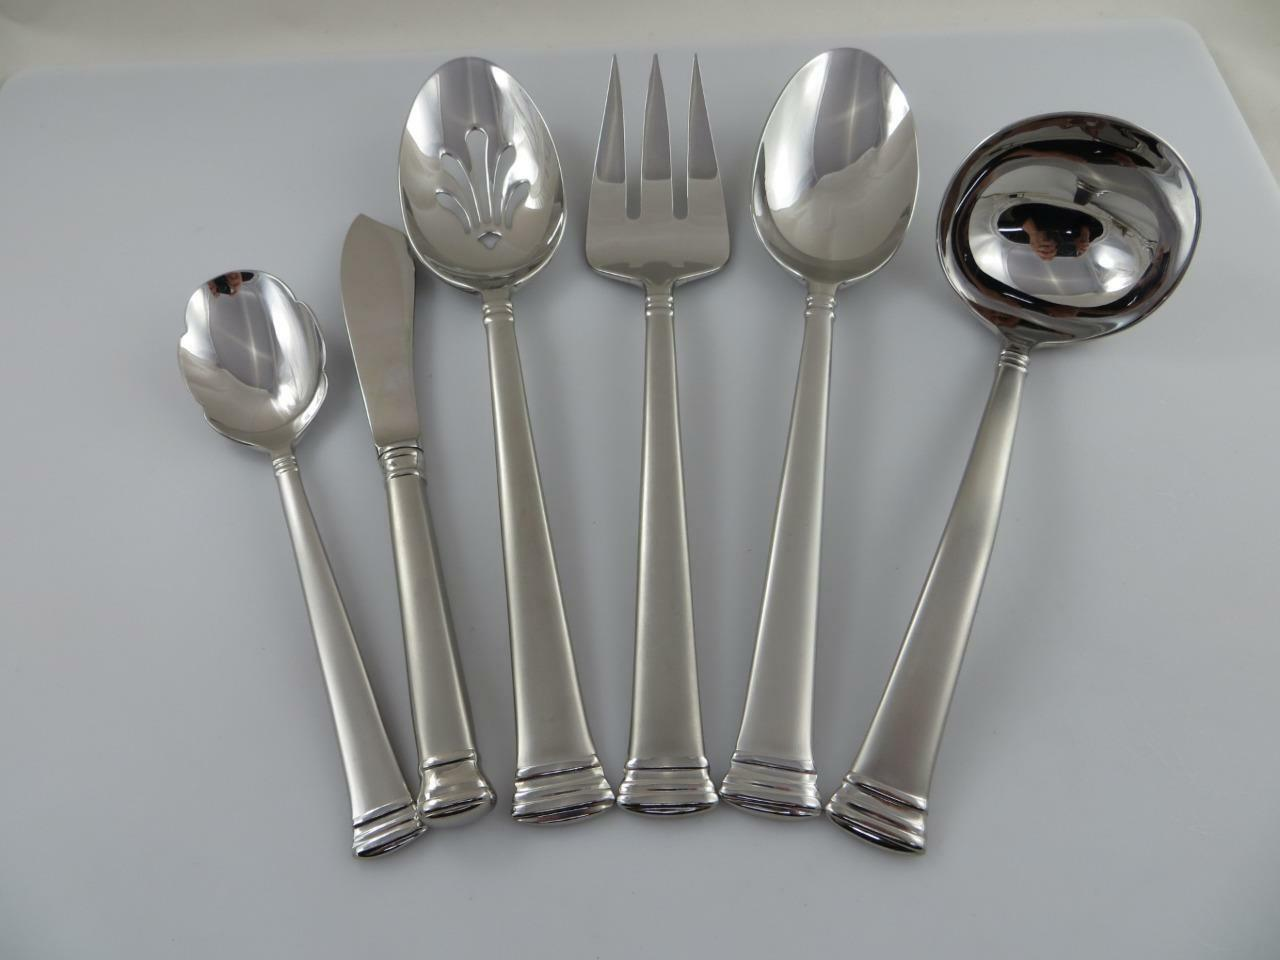 6 Serving Pieces ETERNAL FROSTED Lenox 18 8 Stainless Steel Flatware Korea